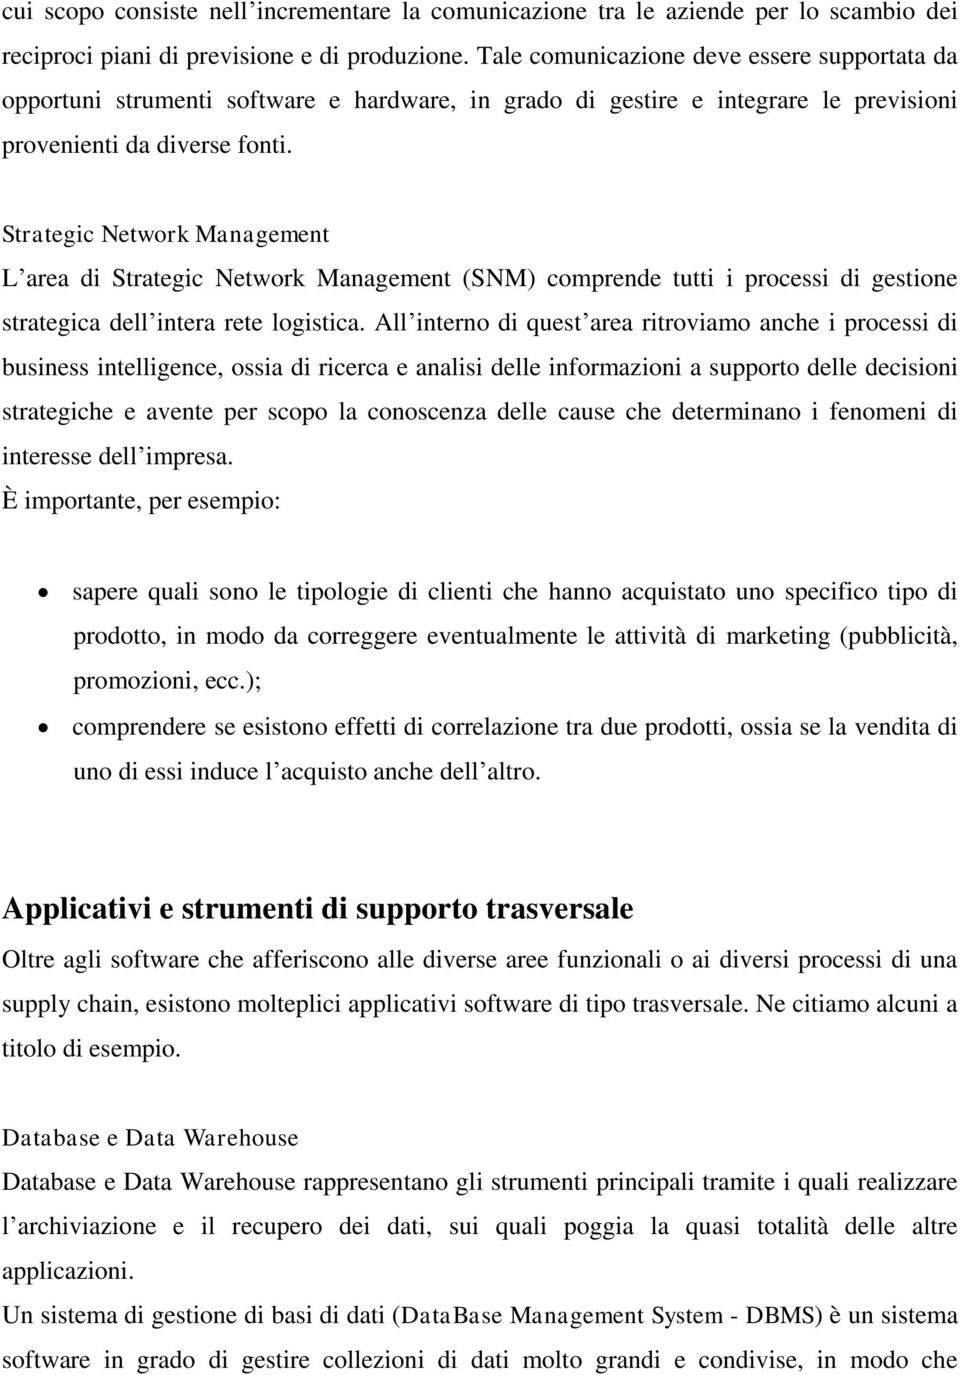 Strategic Network Management L area di Strategic Network Management (SNM) comprende tutti i processi di gestione strategica dell intera rete logistica.